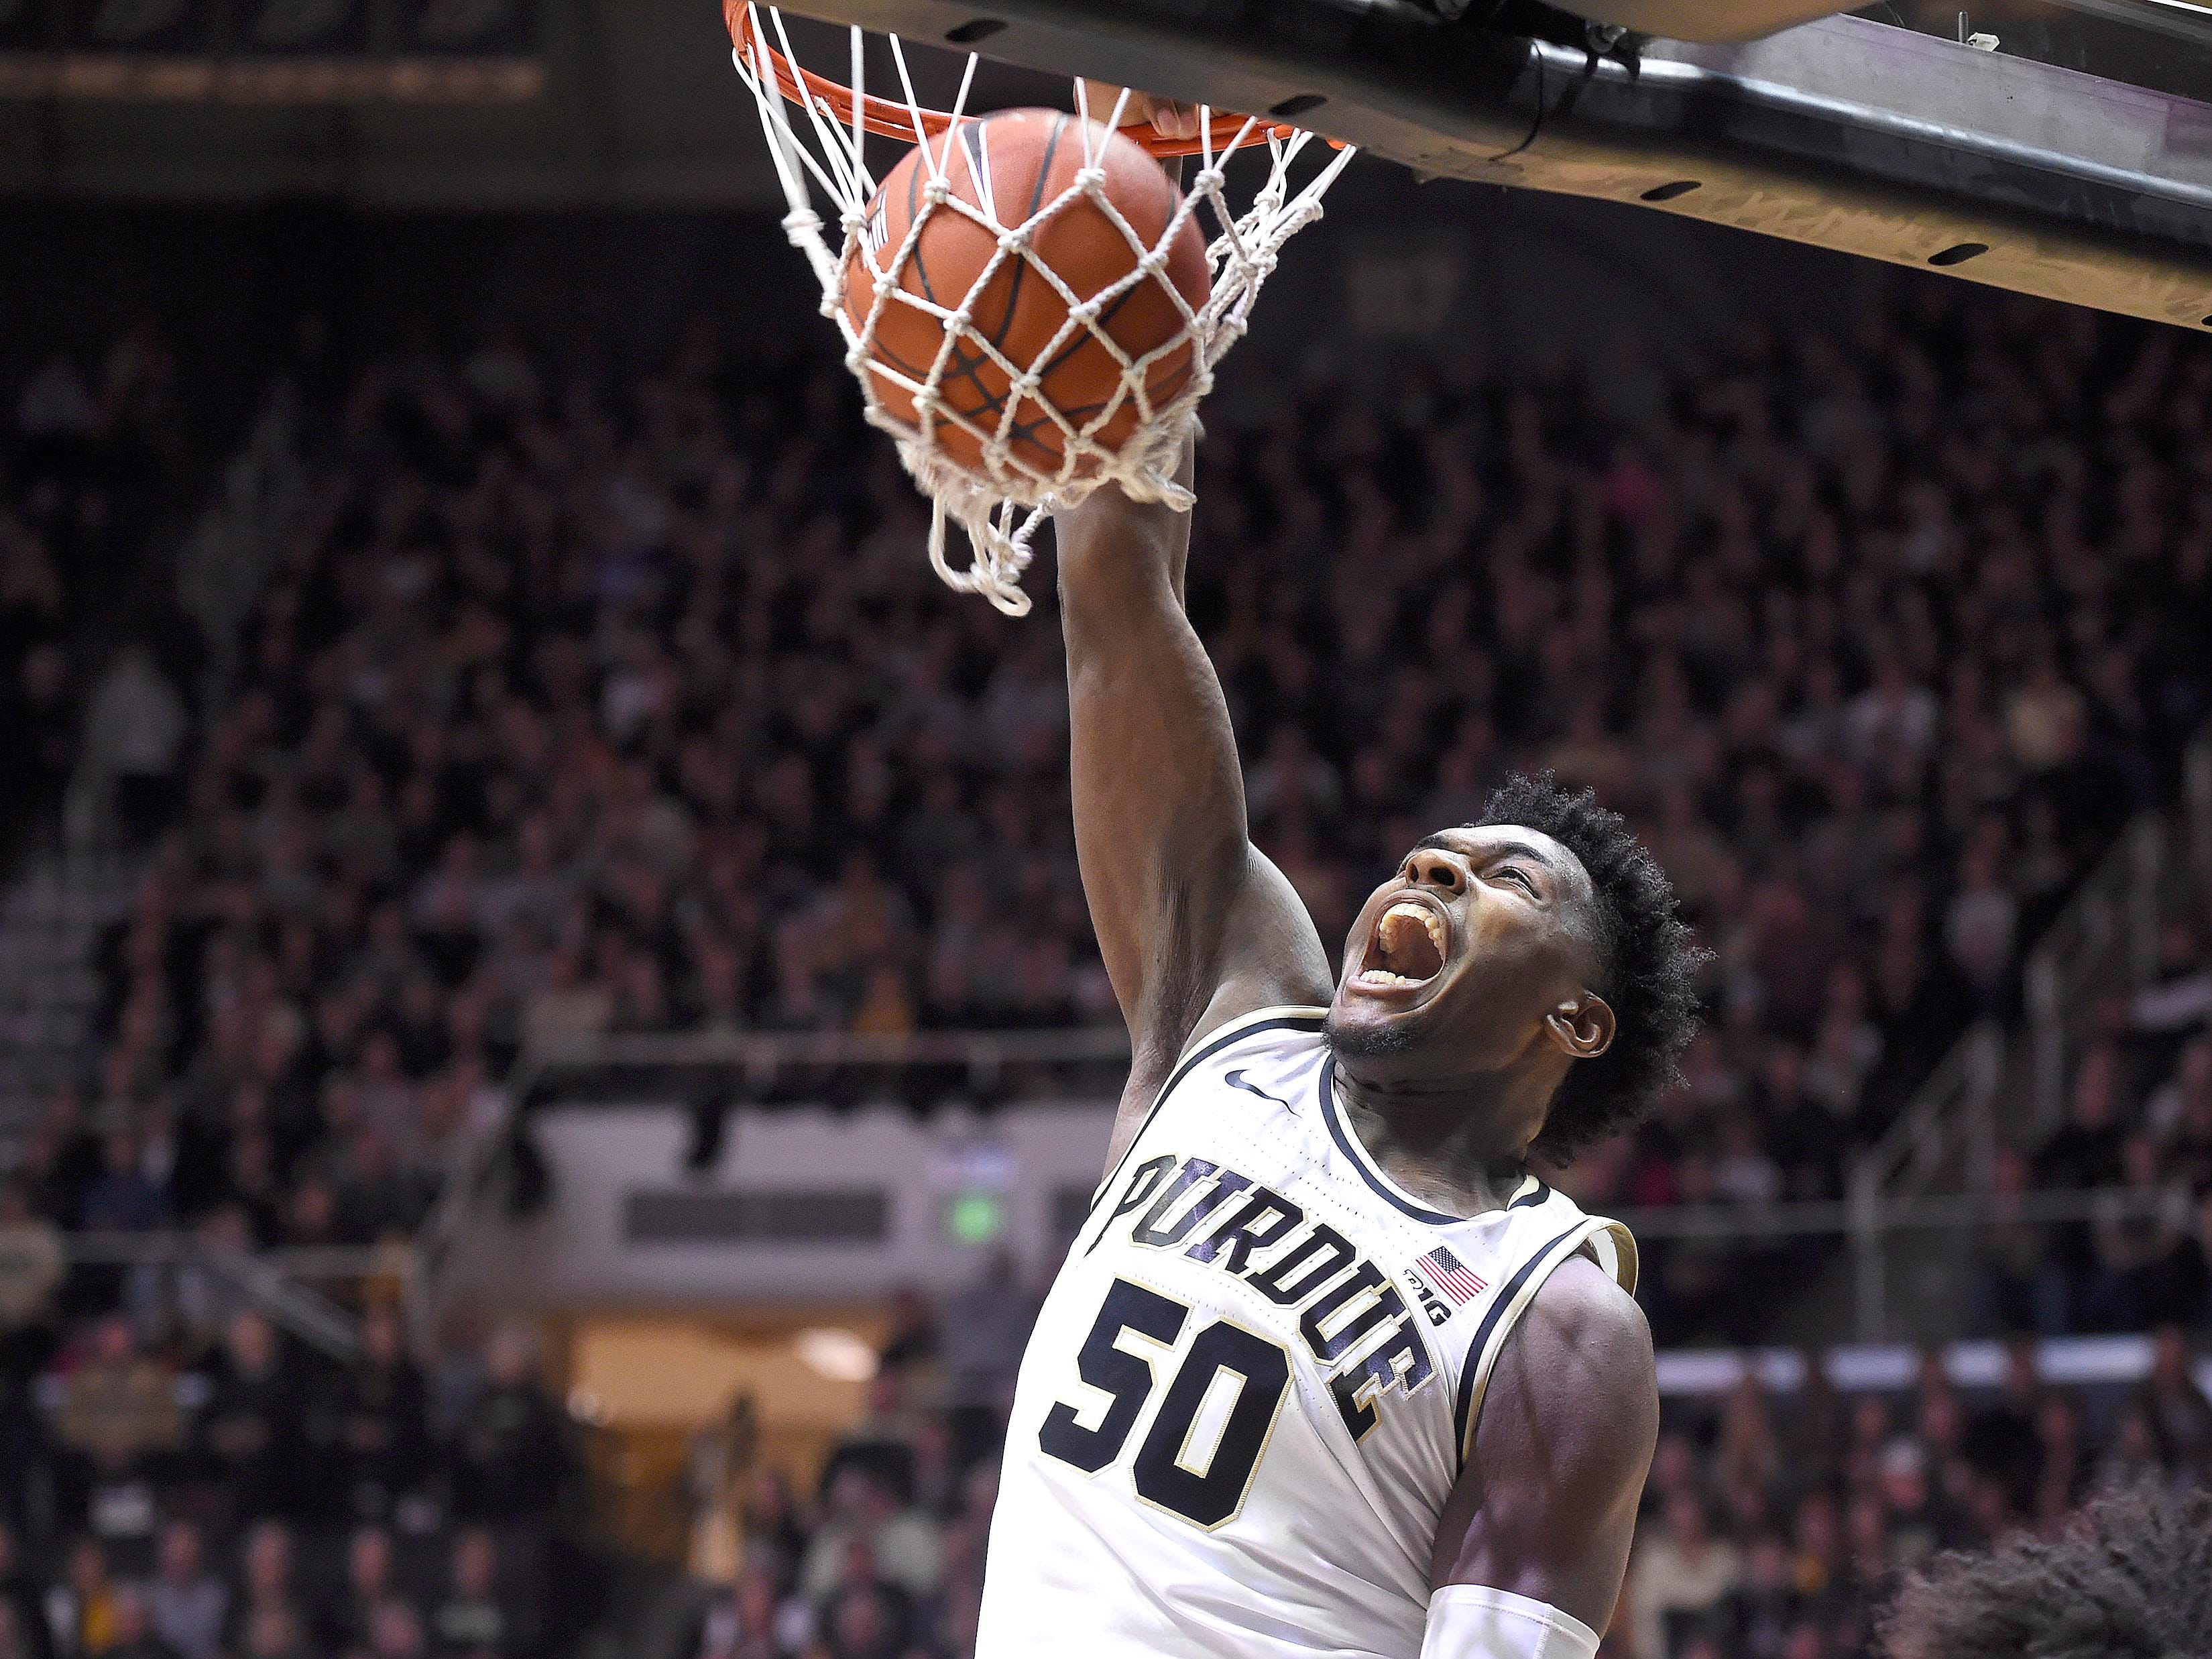 Purdue Boilermakers forward Trevion Williams (50) dunks the ball against the Minnesota Golden Gophers in the first half at Mackey Arena.